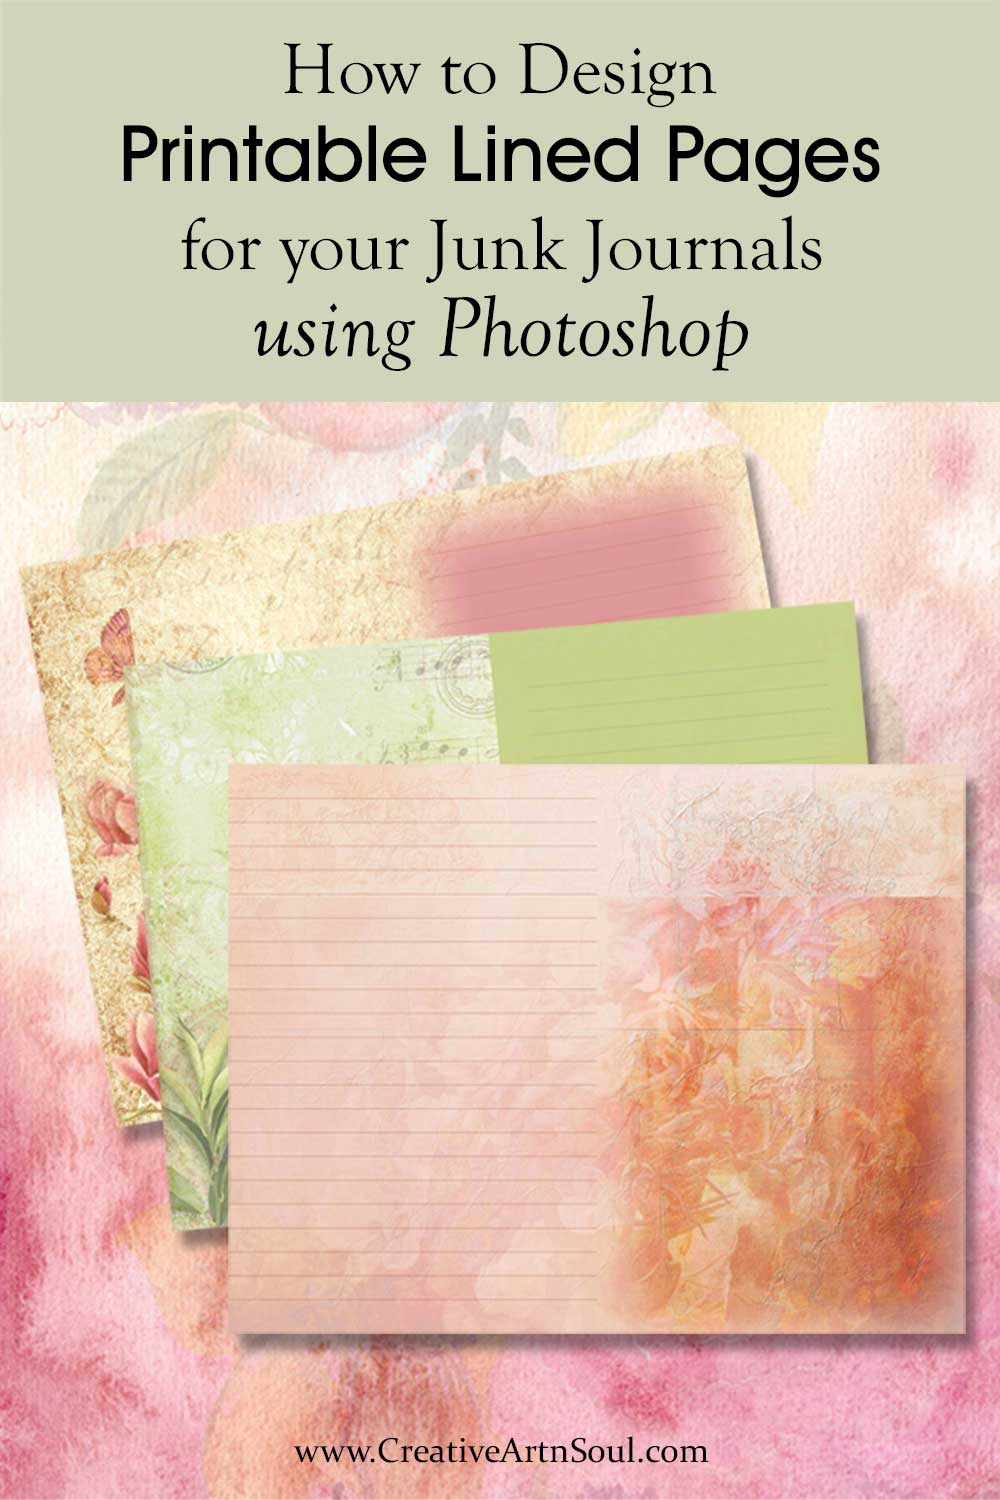 How to Design Printable Lined Journal Pages for your Junk Journals using Photoshop